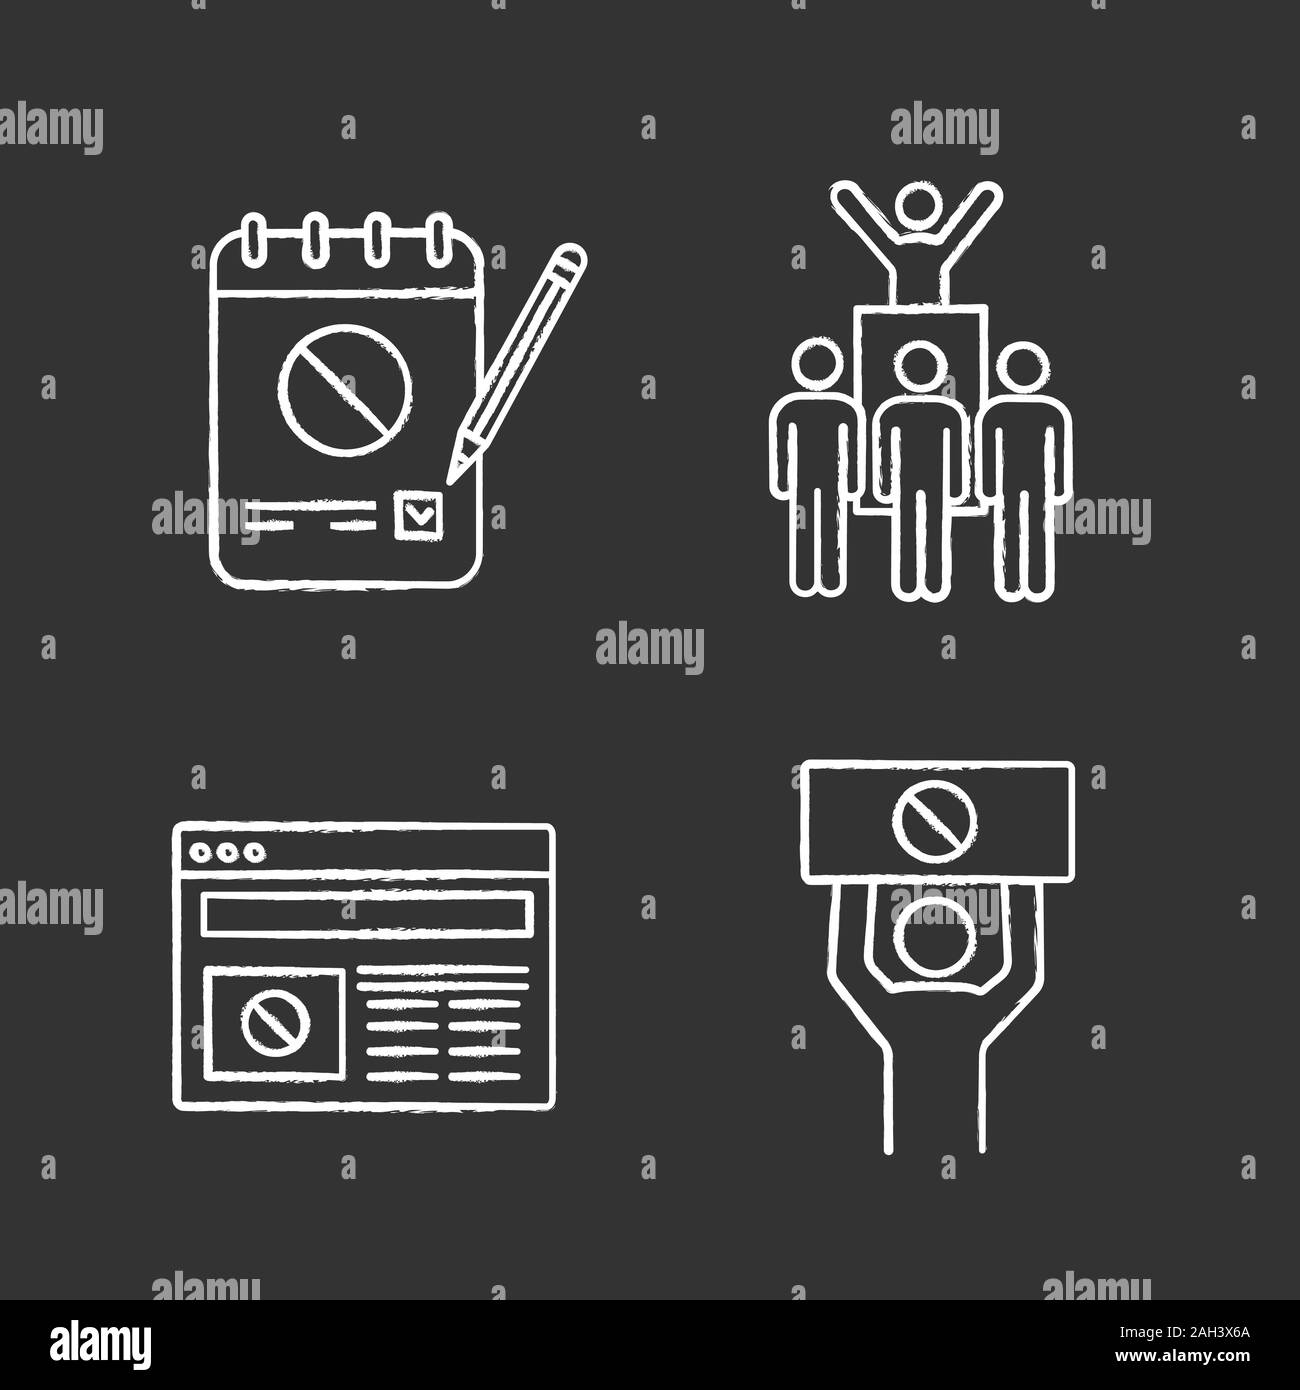 Protest action chalk icons set. Petition, protest leader, social movement, political internet news. Isolated vector chalkboard illustrations Stock Vector